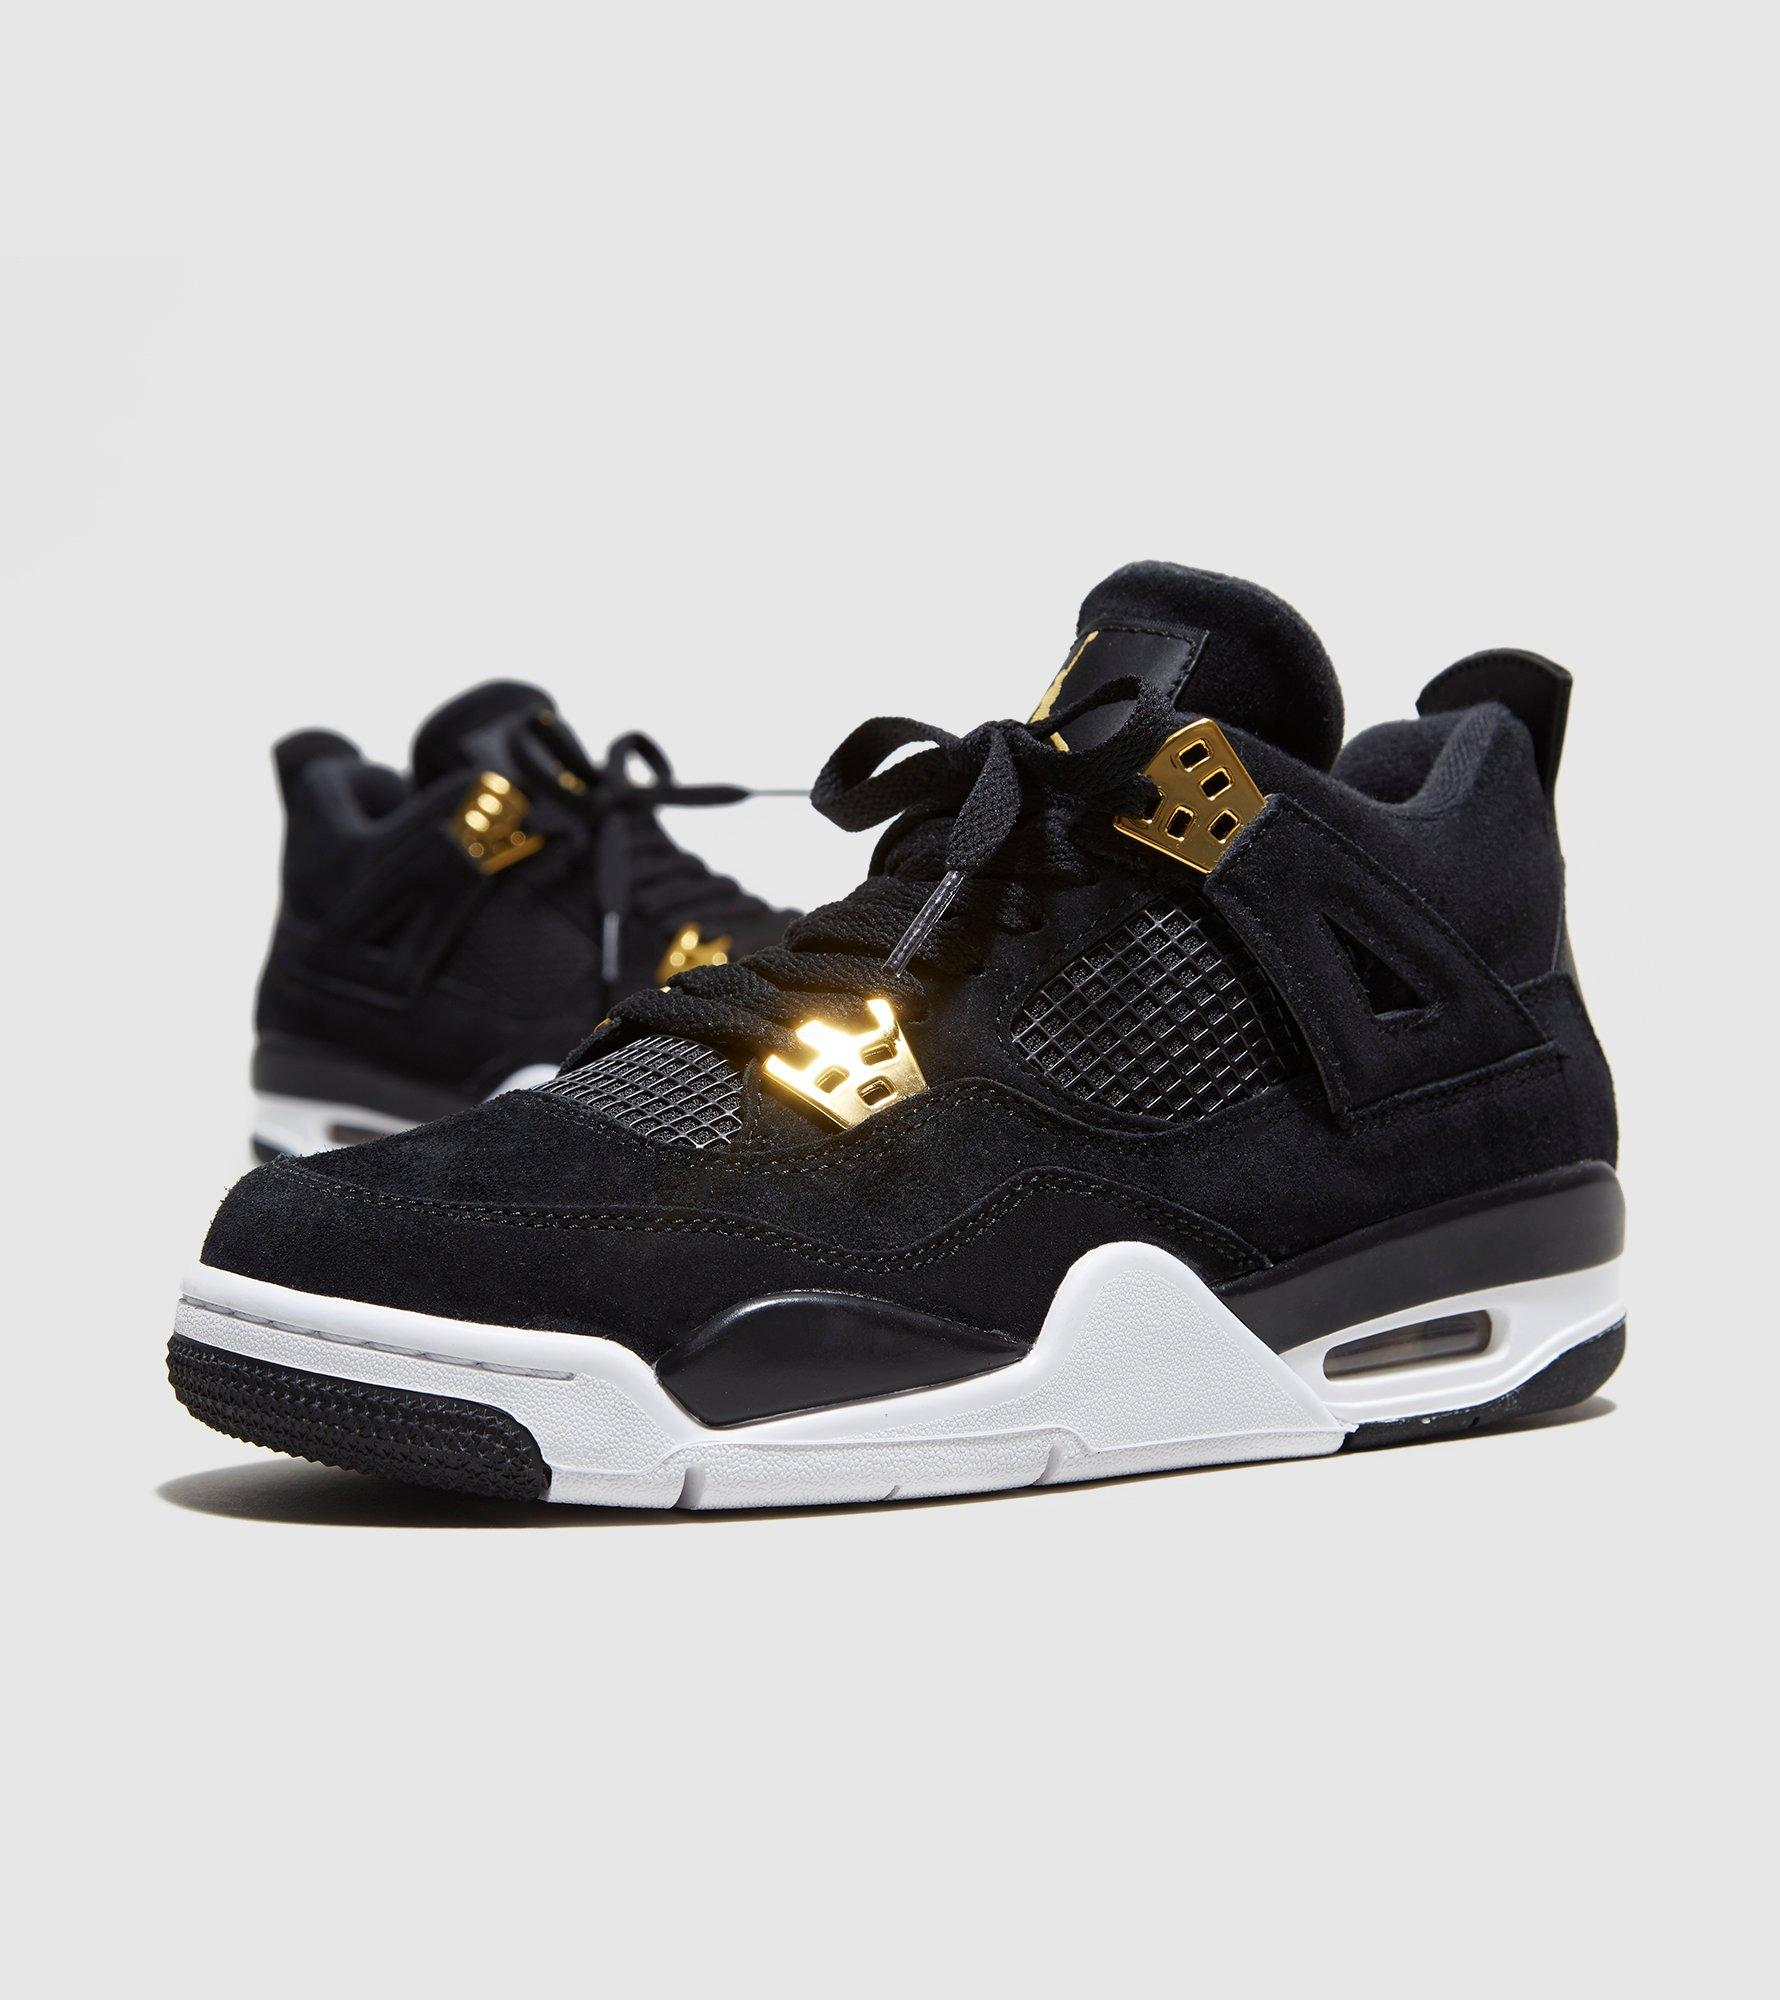 the air jordan 4 x levi stubbs